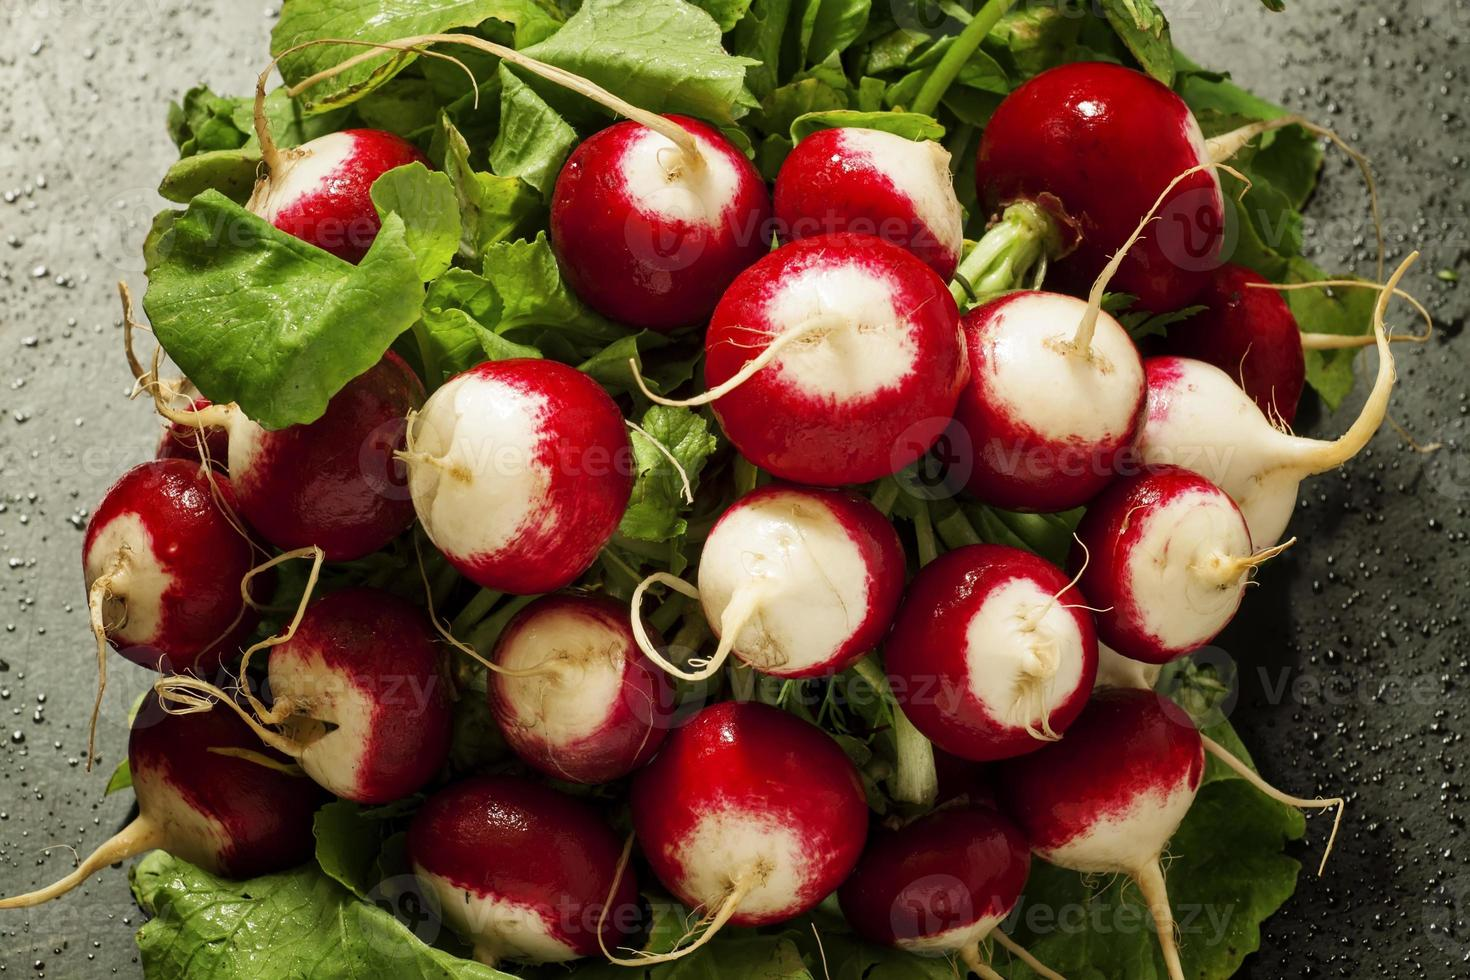 Ð¡oncept of vegan food - radishes with water drops photo